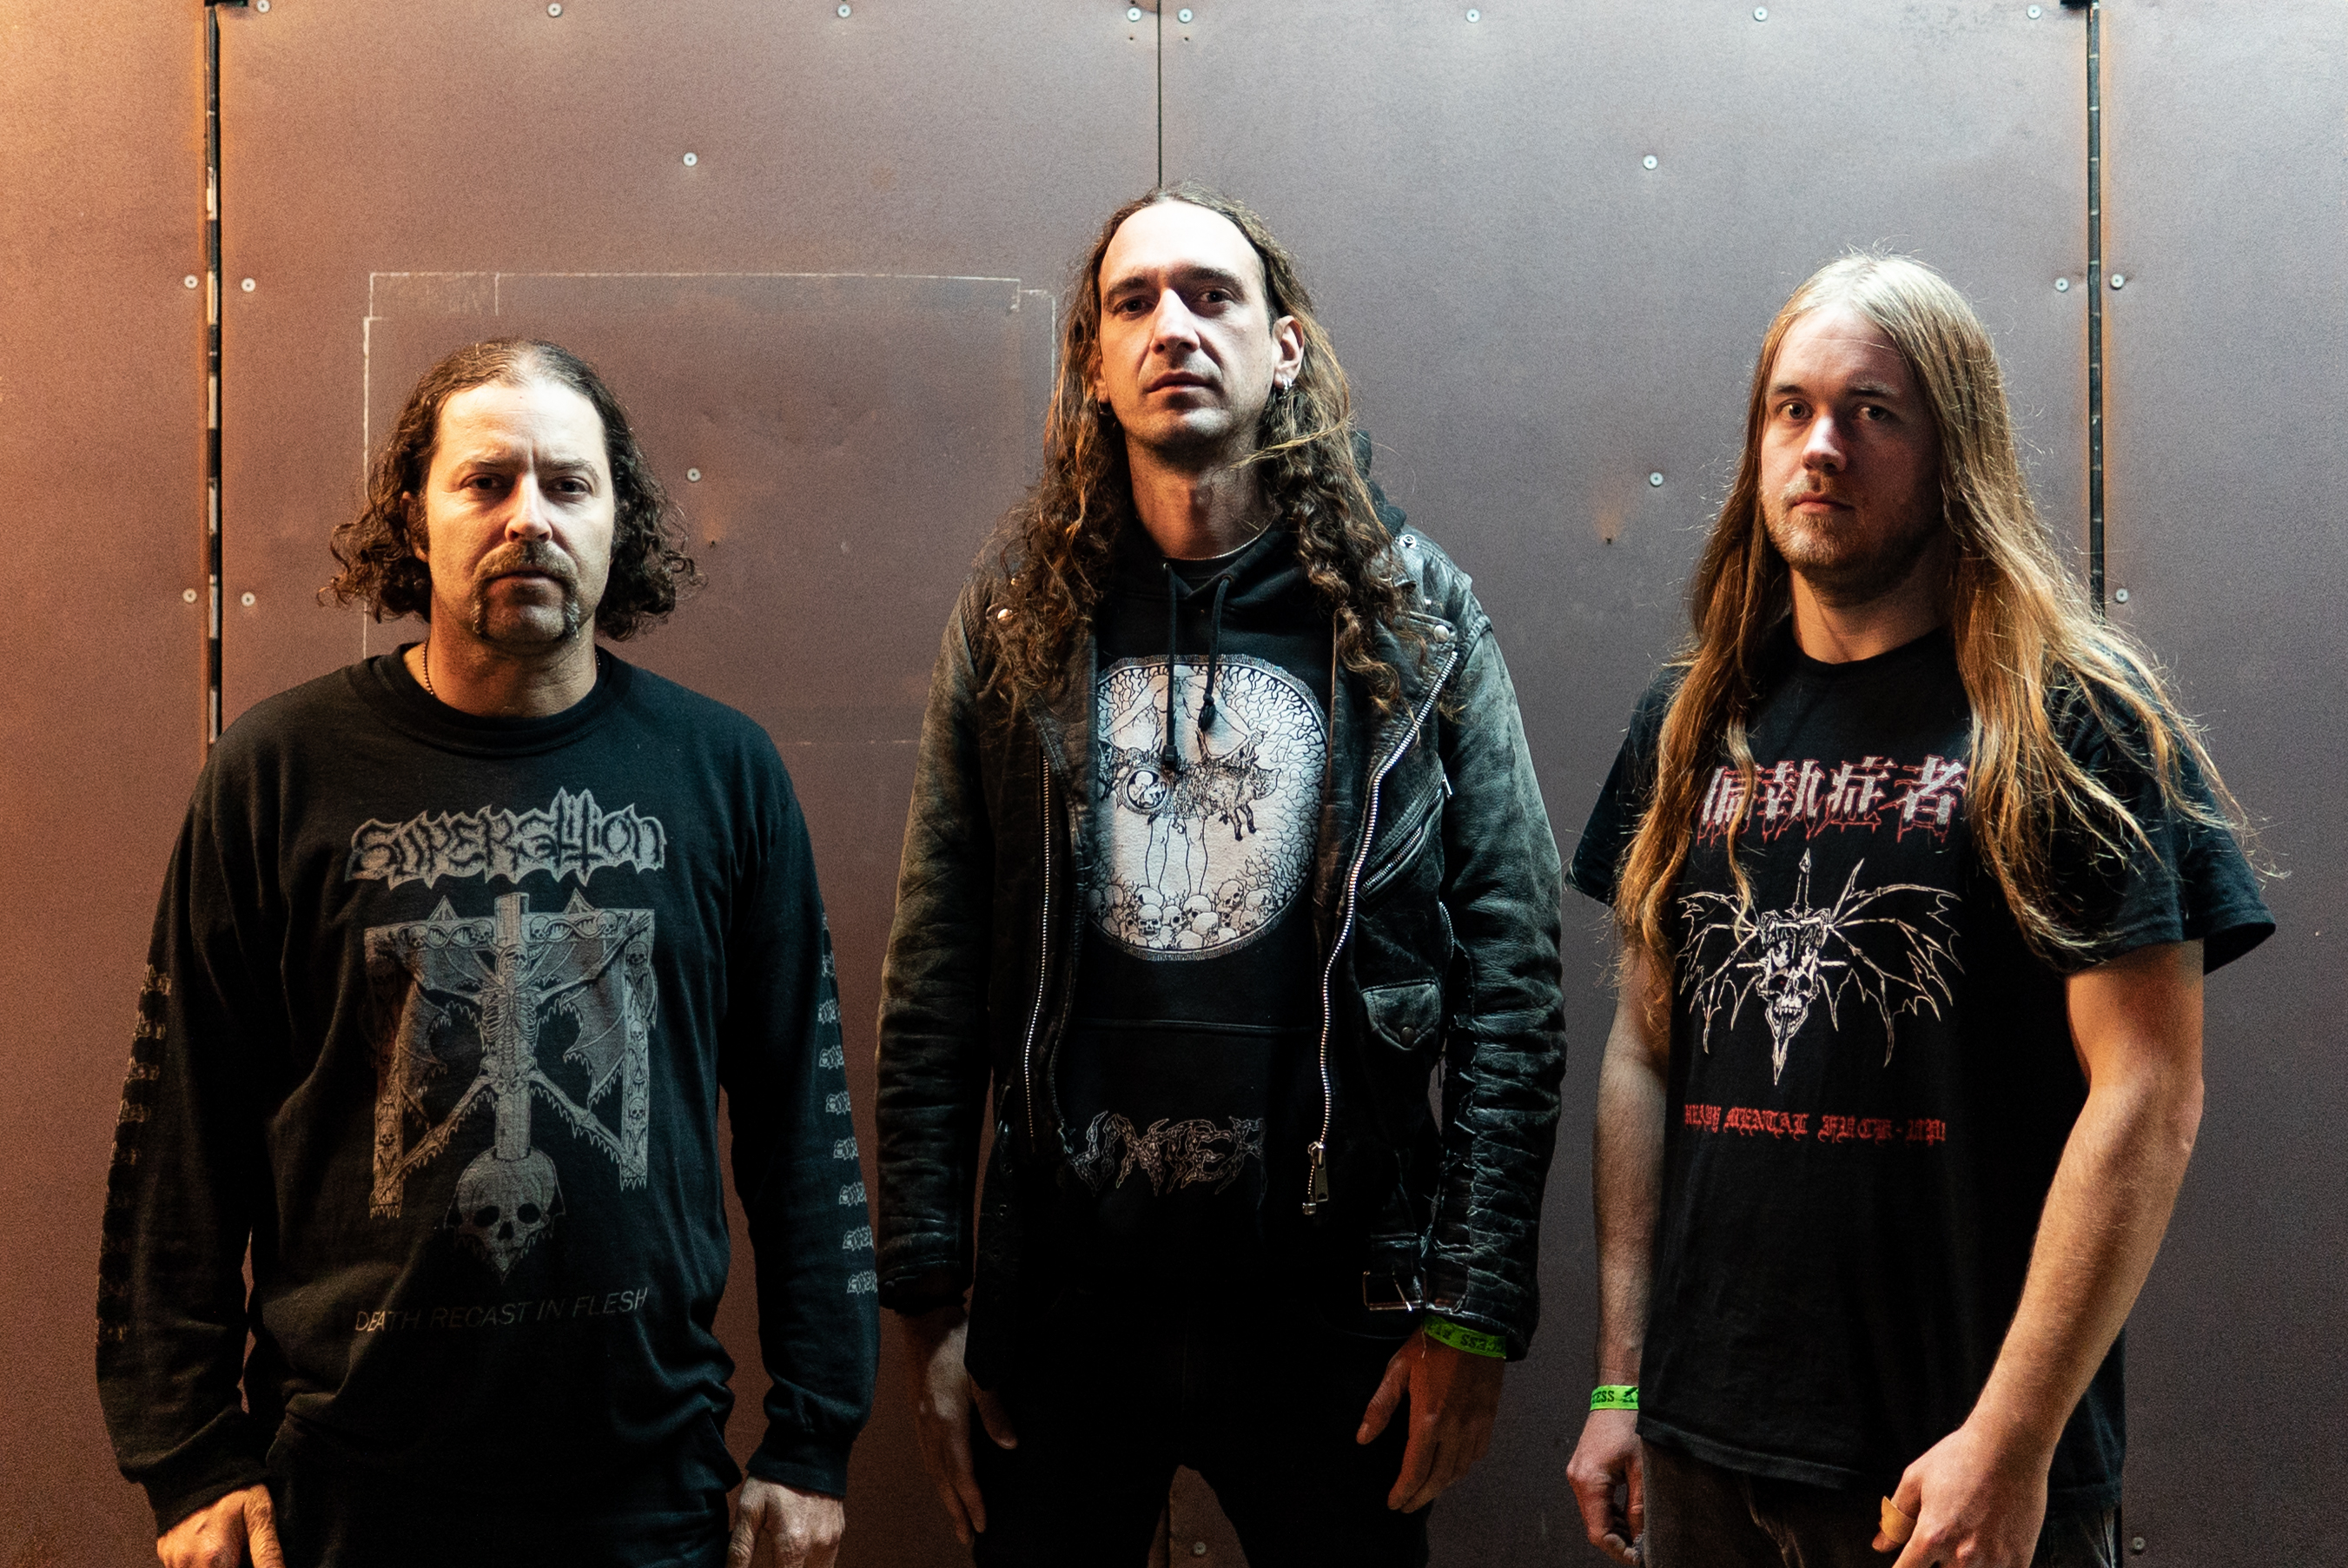 NECROT: Bay Area Death Metal Trio To Tour Australia This Fall With Faceless Burial; Band To Play Tankcrimes Takeover And More